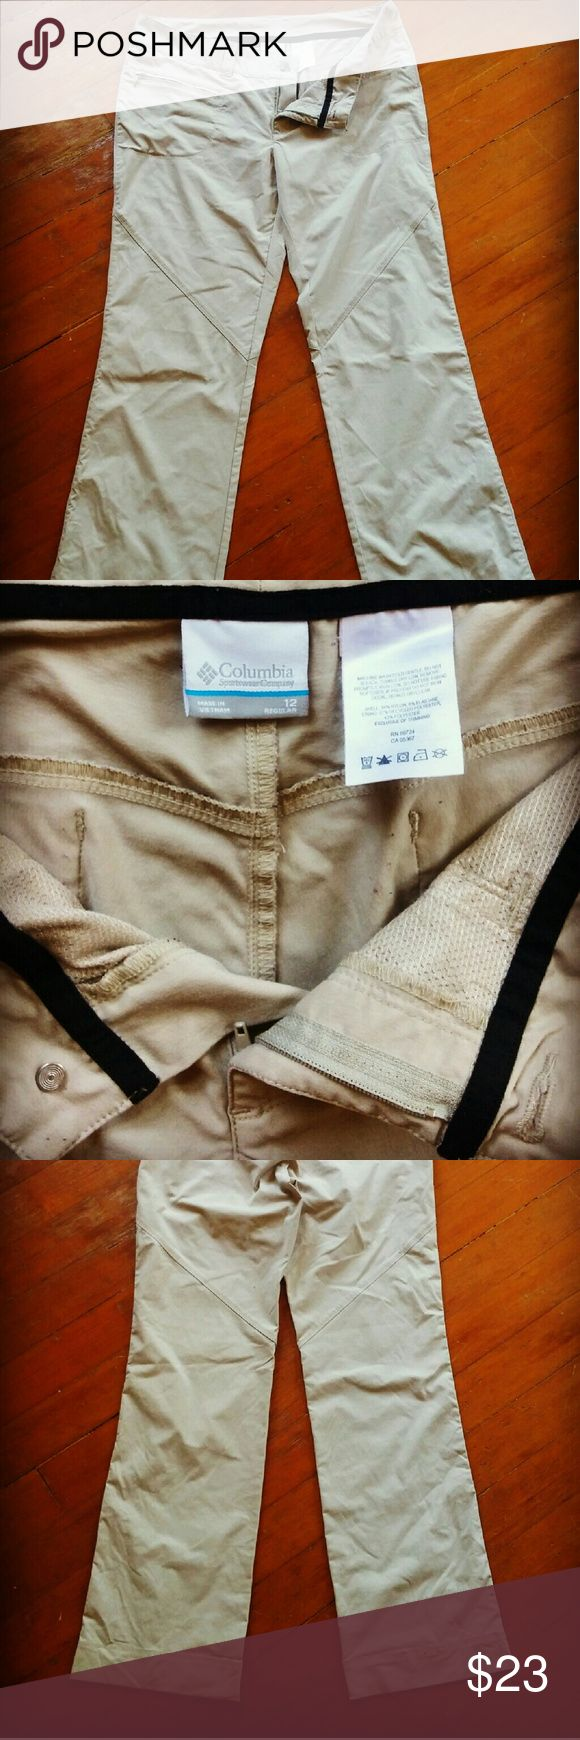 Columbia waterproof Khaki hiking pants Waterproof hiking pants by Columbia. They are phenomenal for hiking or any outdoor activity with water. Boot cut. Khaki color. Zippers on front pockets. Columbia Pants Boot Cut & Flare